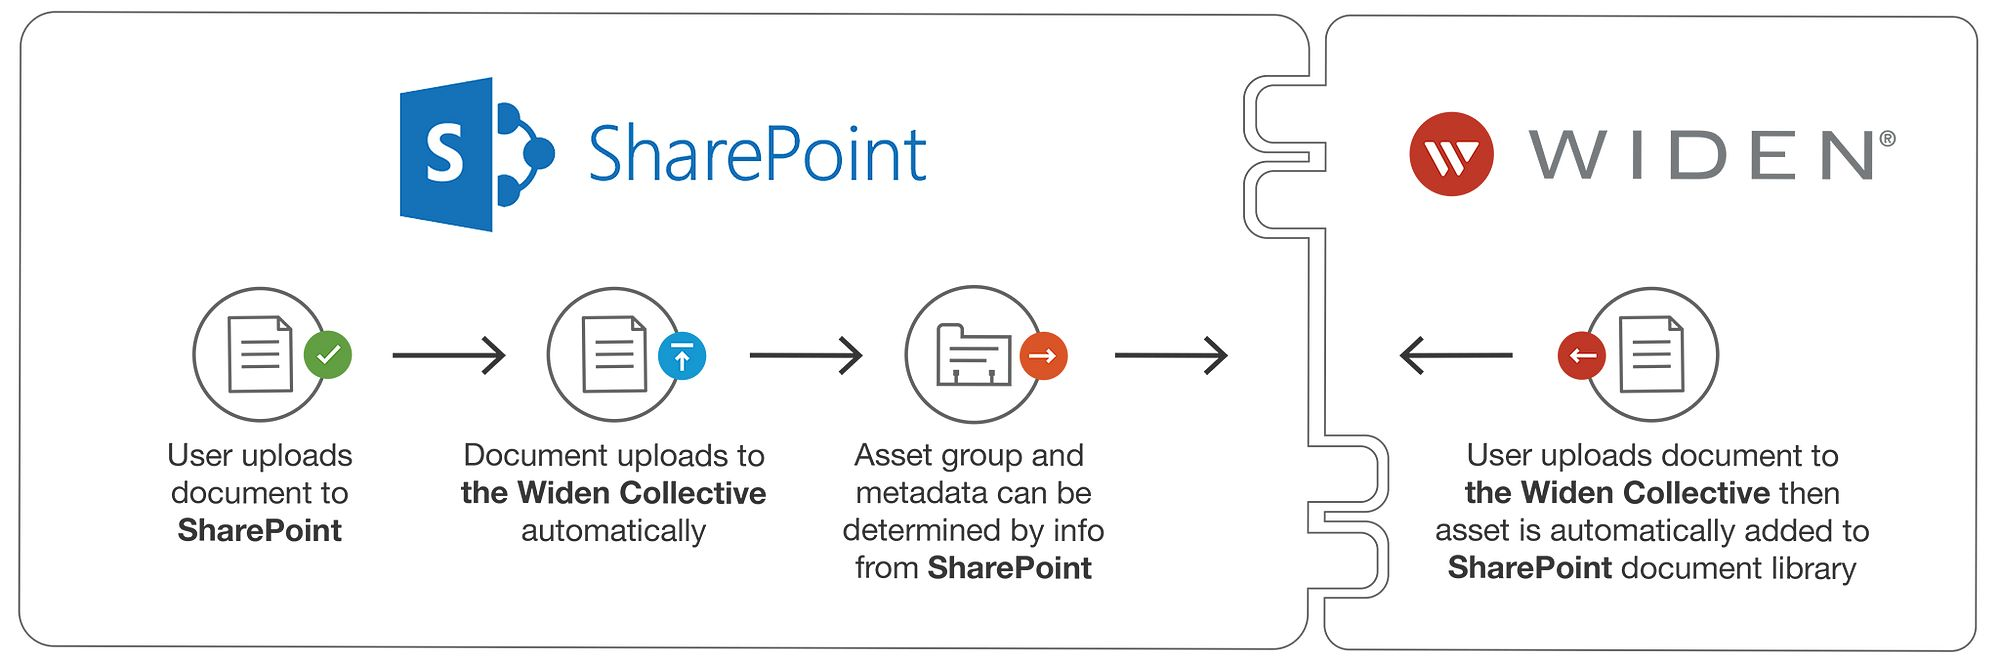 SharePoint integration with the Widen Collective